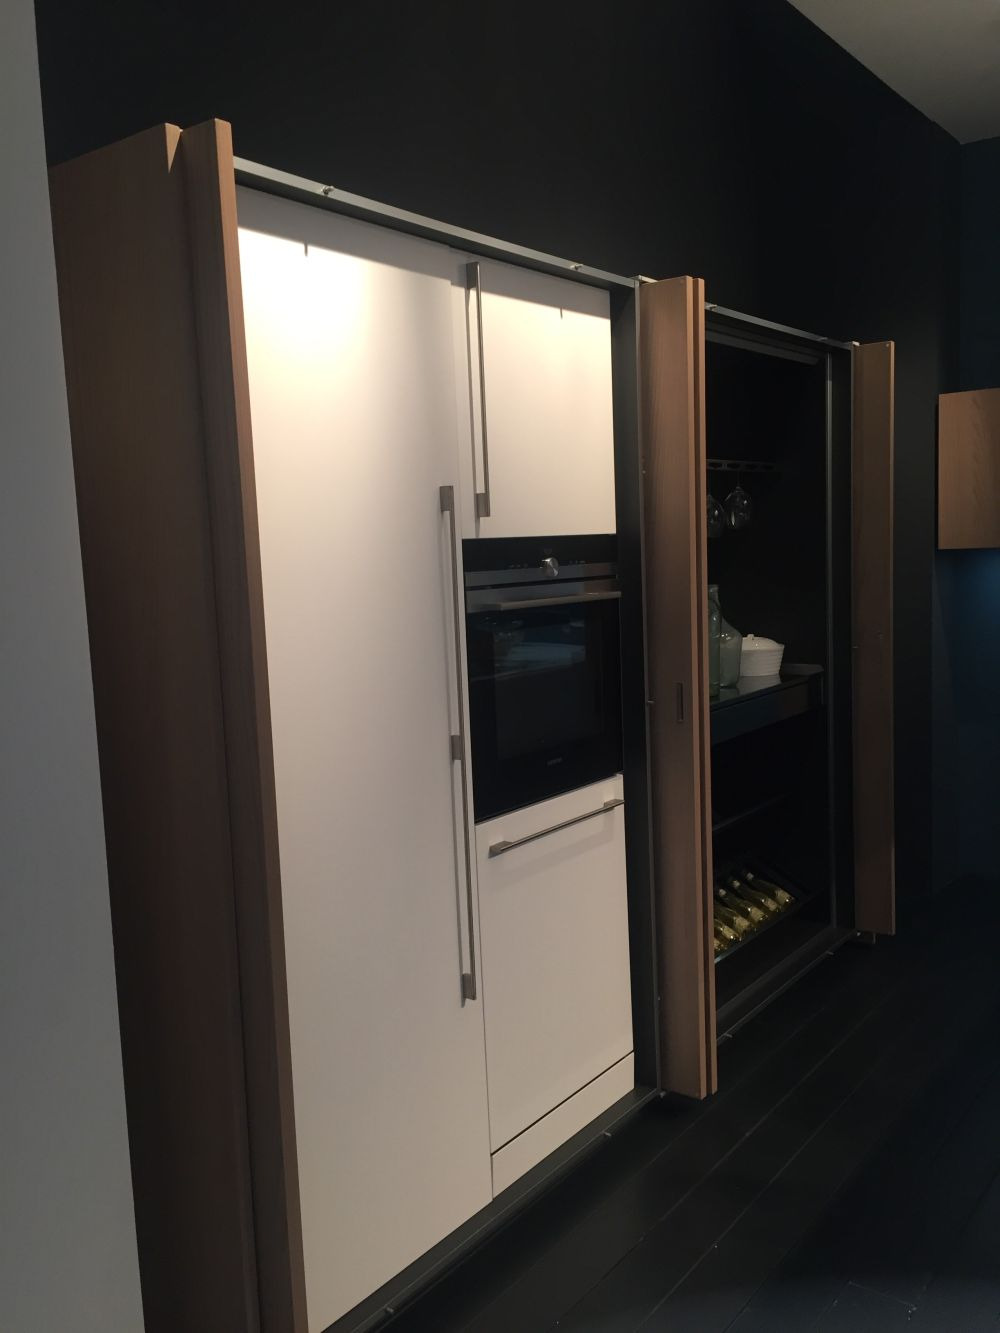 Retractable Cabinet Doors Luxury Kitchen Pocket Doors A Must Have for Small and Stylish Homes